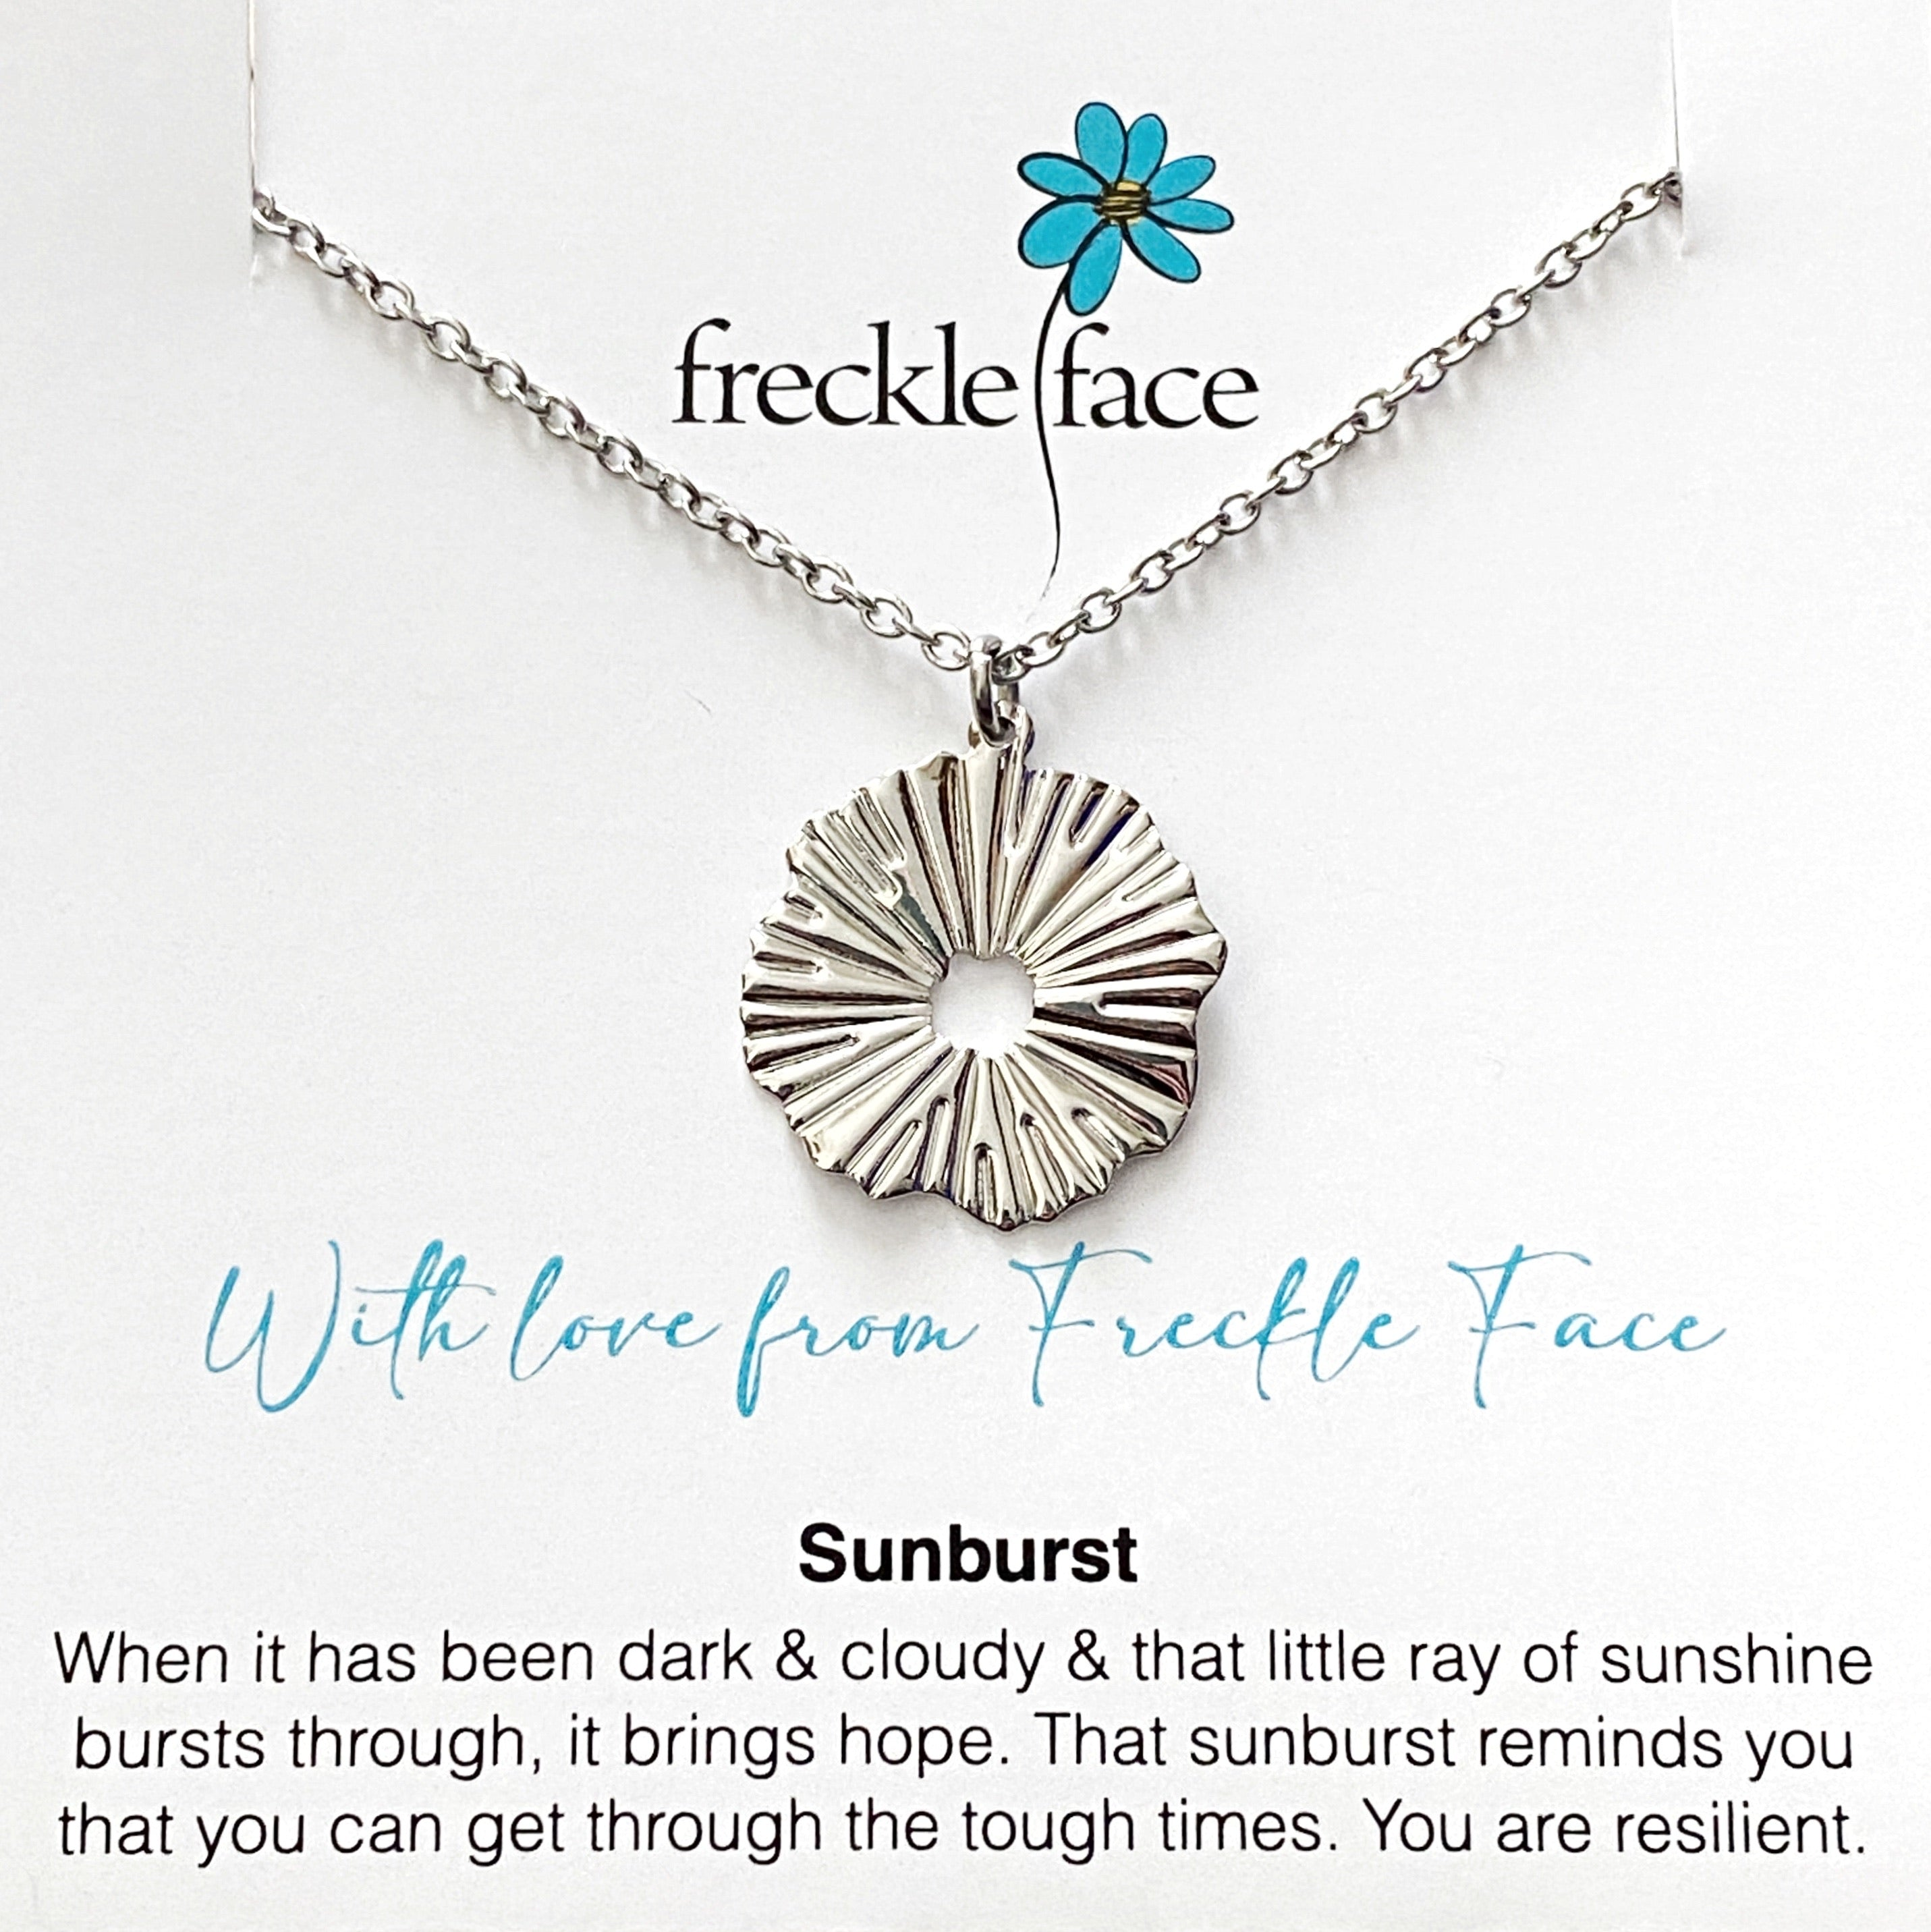 With Love from Freckle Face - Sunburst